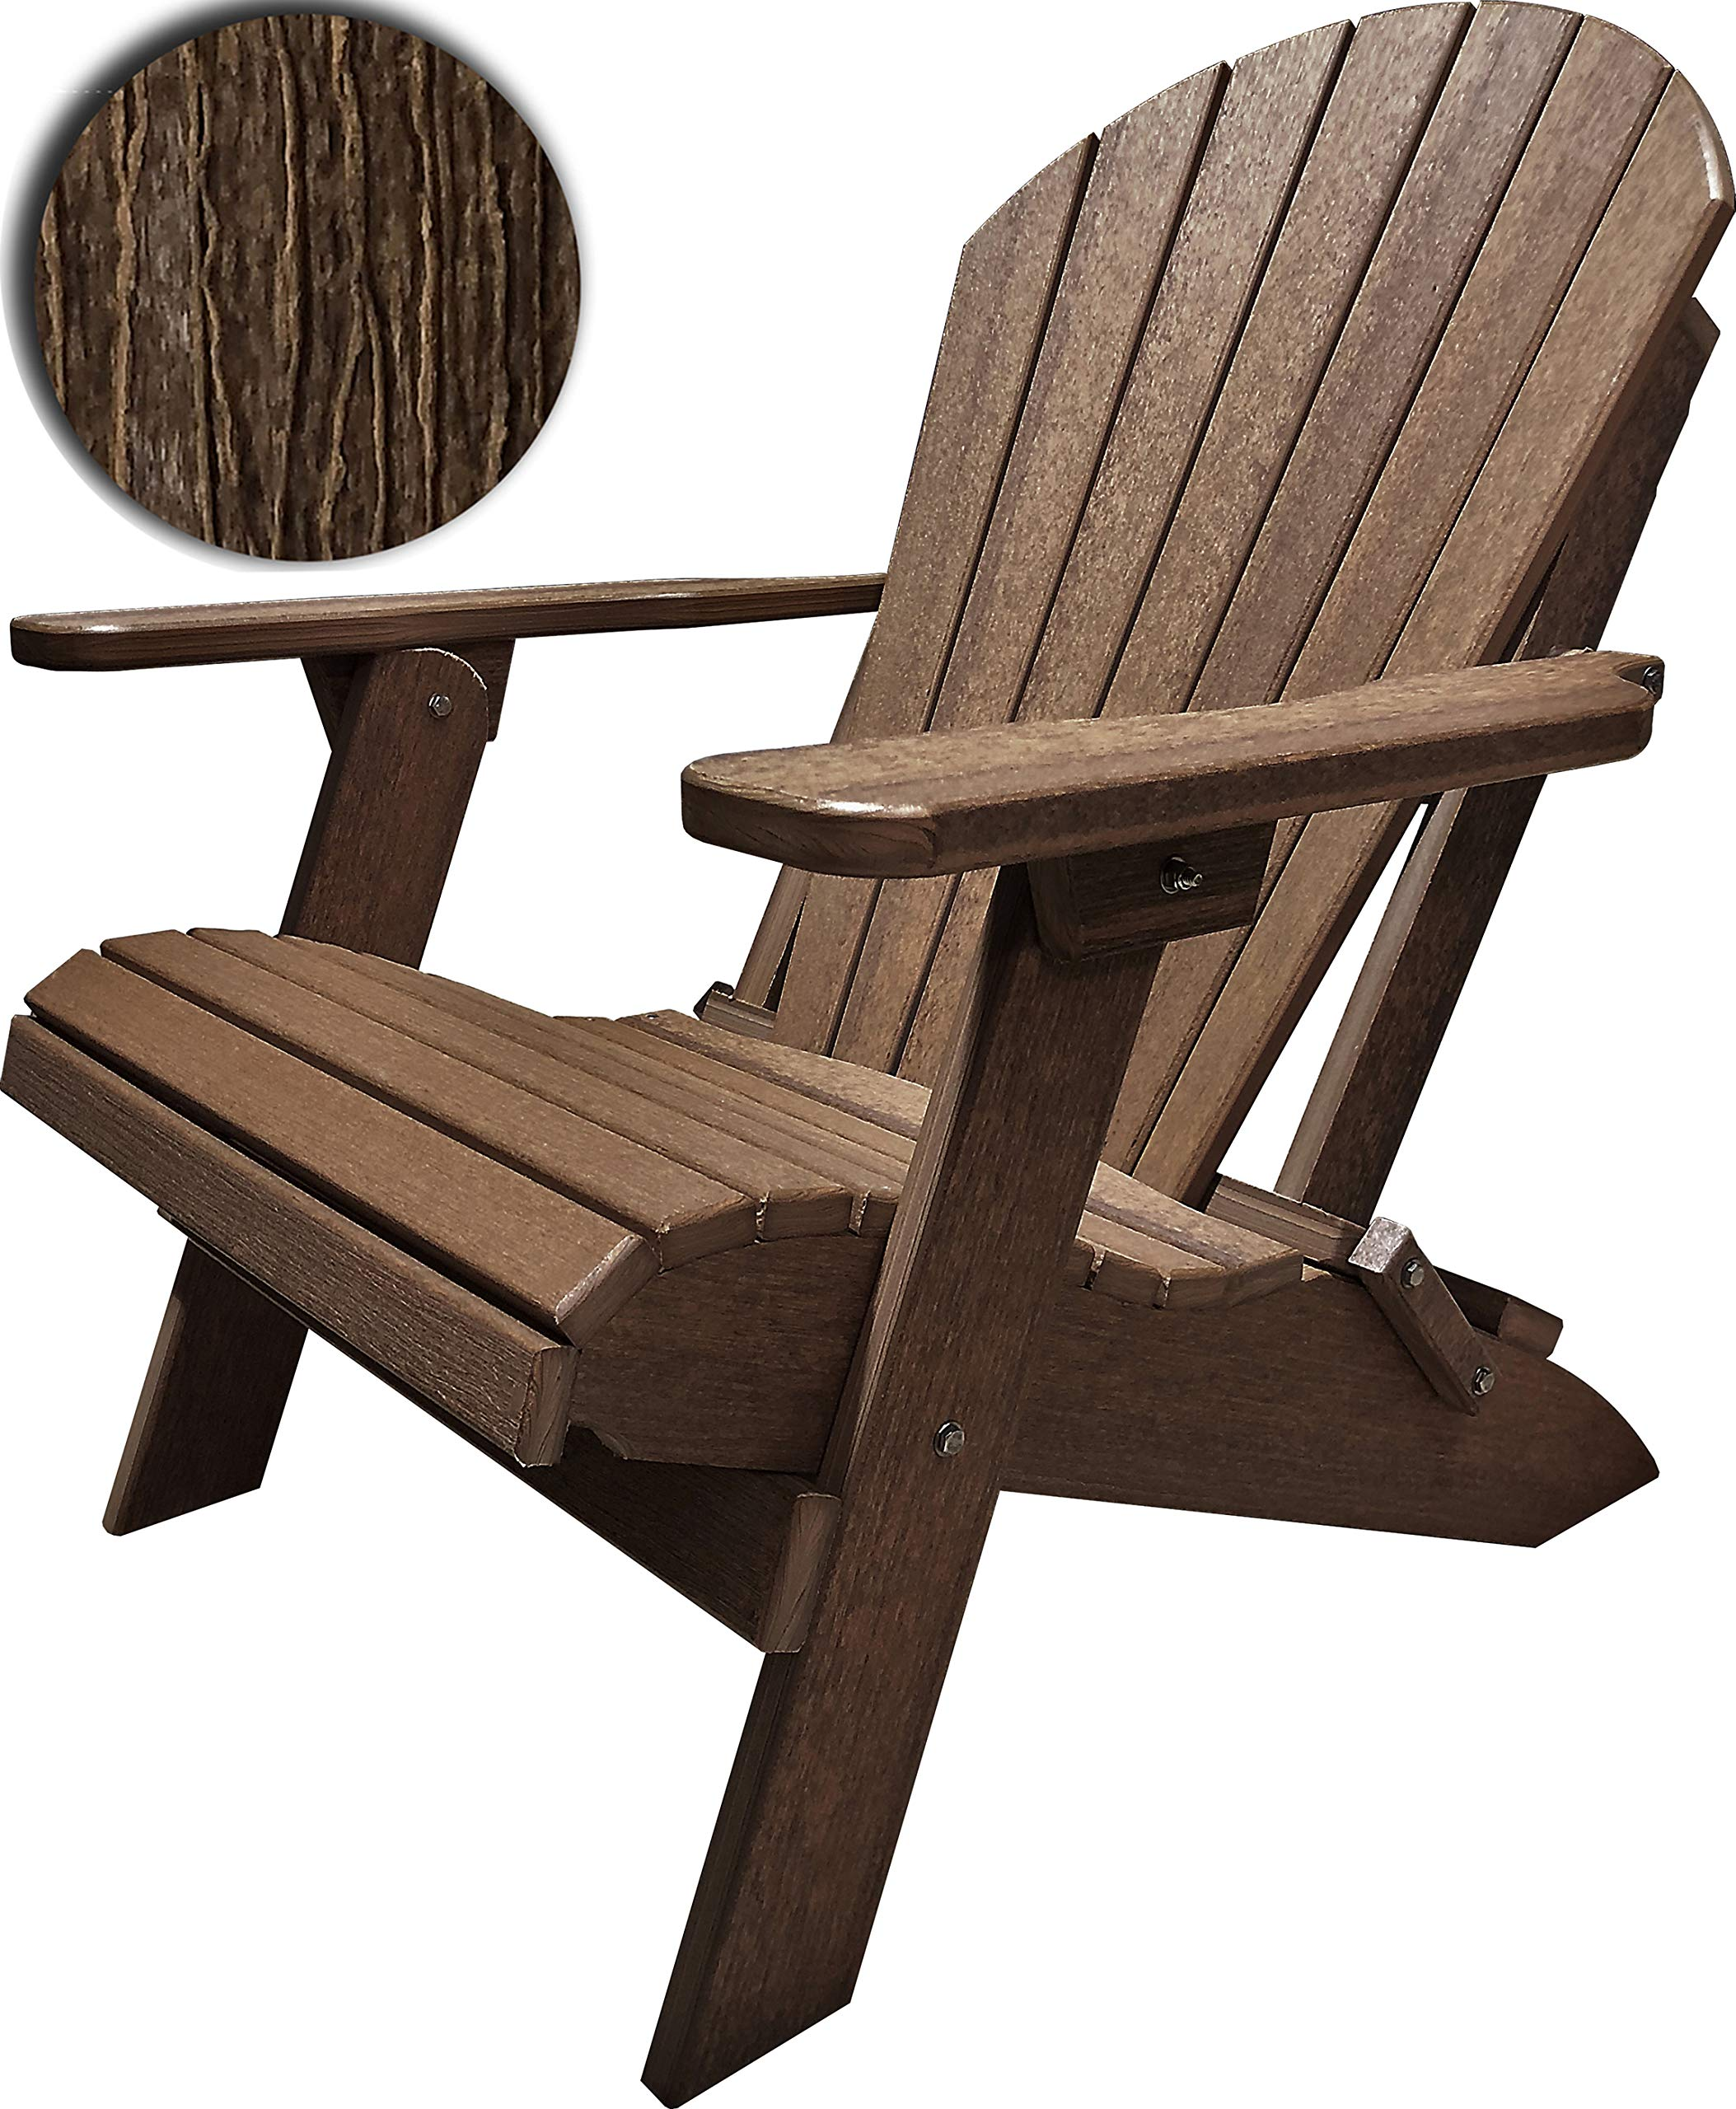 DuraWeather Poly King Size Folding Adirondack Chair (Antique Mahogany) by DuraWeather Poly